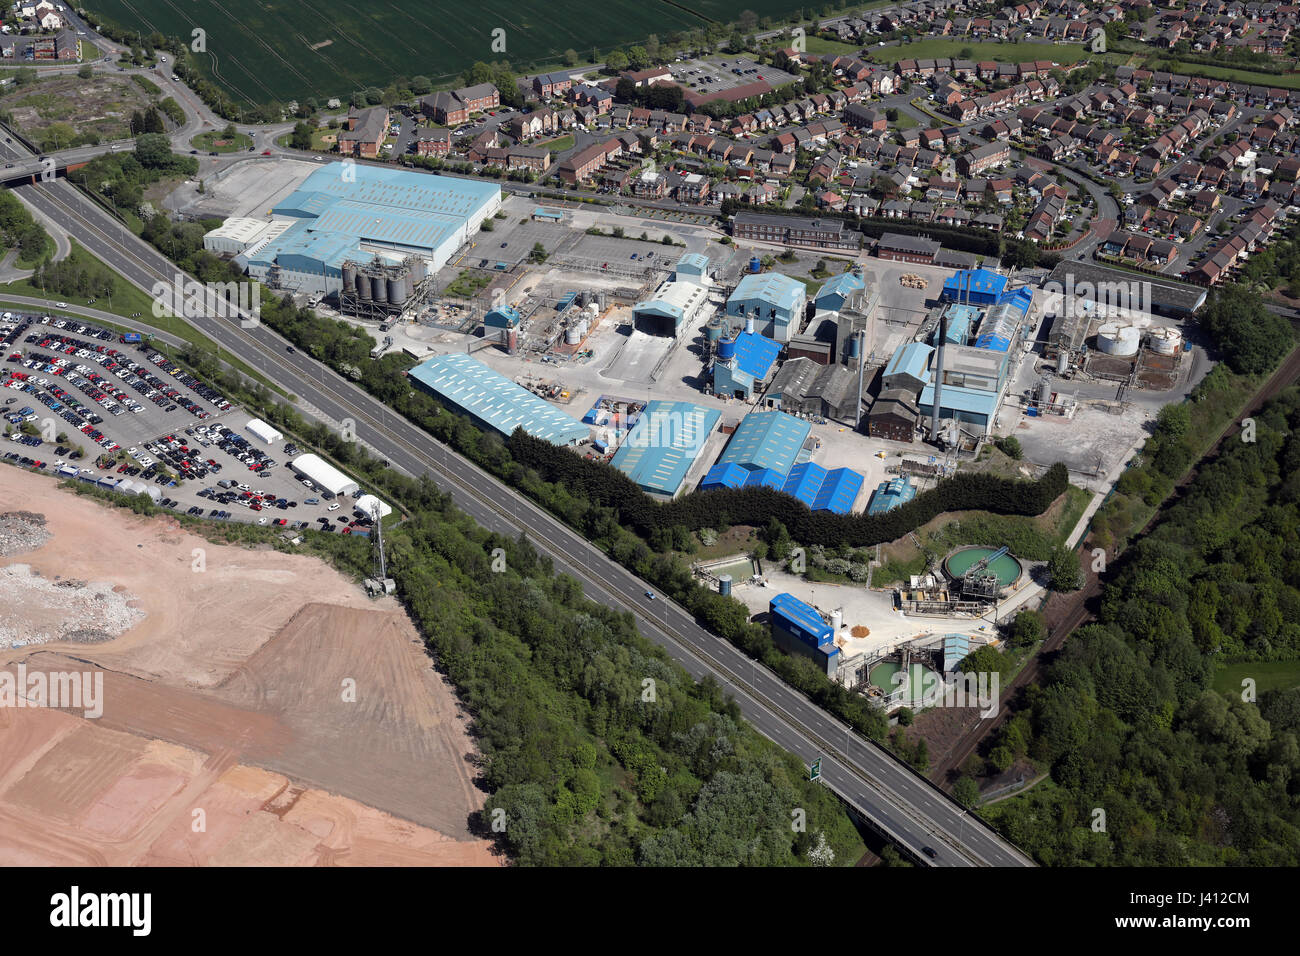 aerial view of BYK Additives factory in Widnes, Cheshire, UK - Stock Image